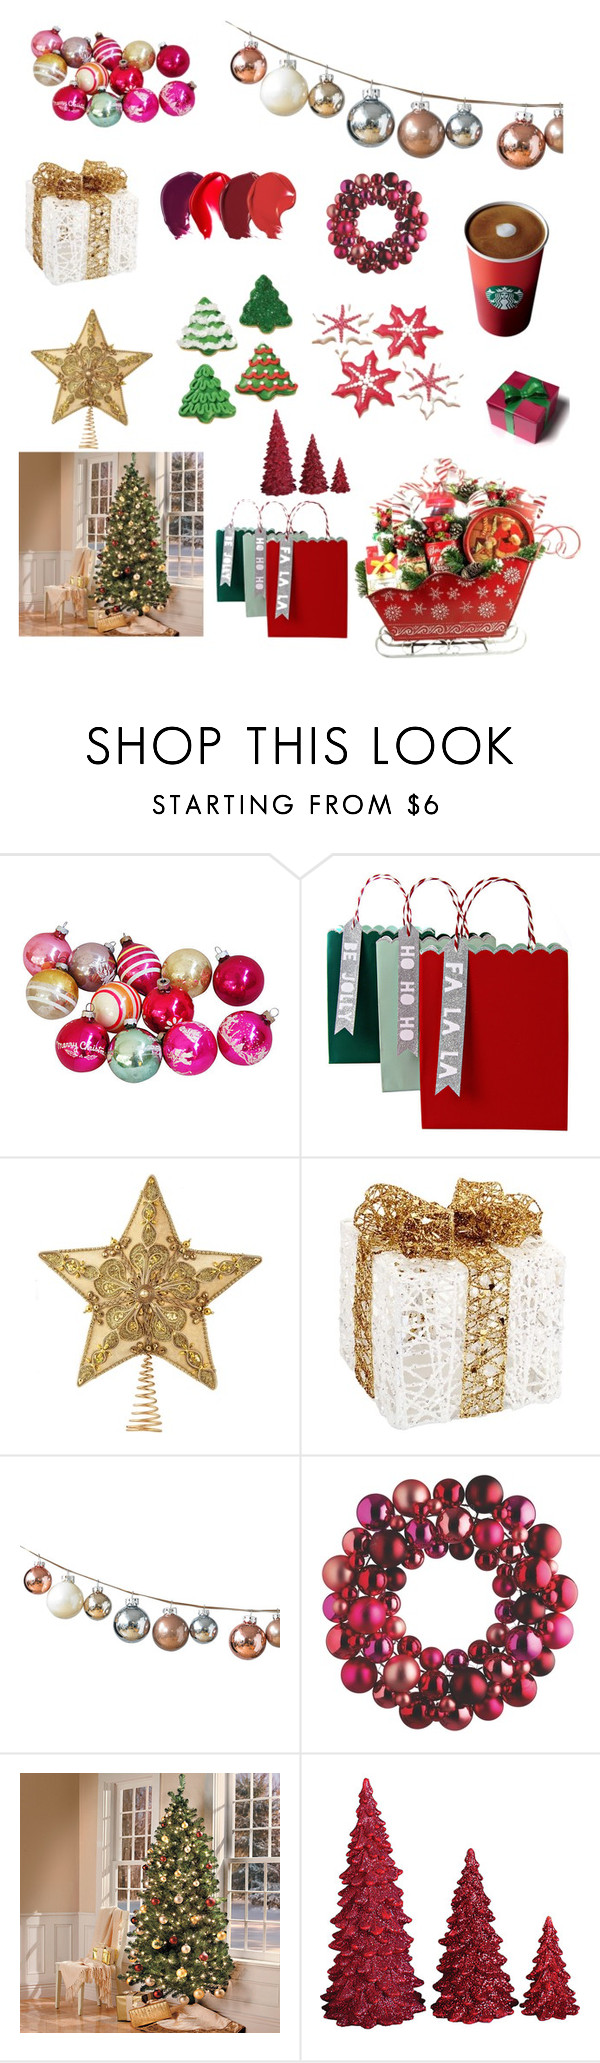 """""""Christmas Spirit"""" by alisa1130 ❤ liked on Polyvore featuring interior, interiors, interior design, home, home decor, interior decorating, Meri Meri, Melrose International, DwellStudio and Dot & Bo"""